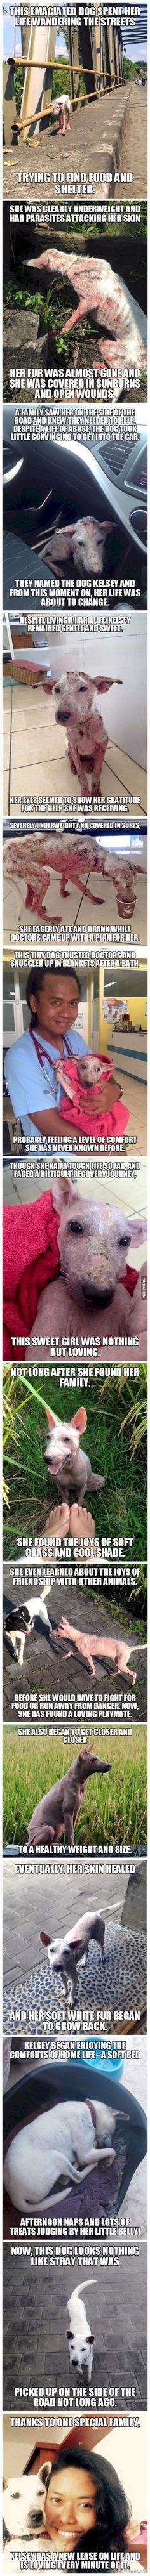 A story of a stray dog... -faith in humanity restored. - 9GAG. Historias de amor y humanidad que nos devuelven la esperanza.